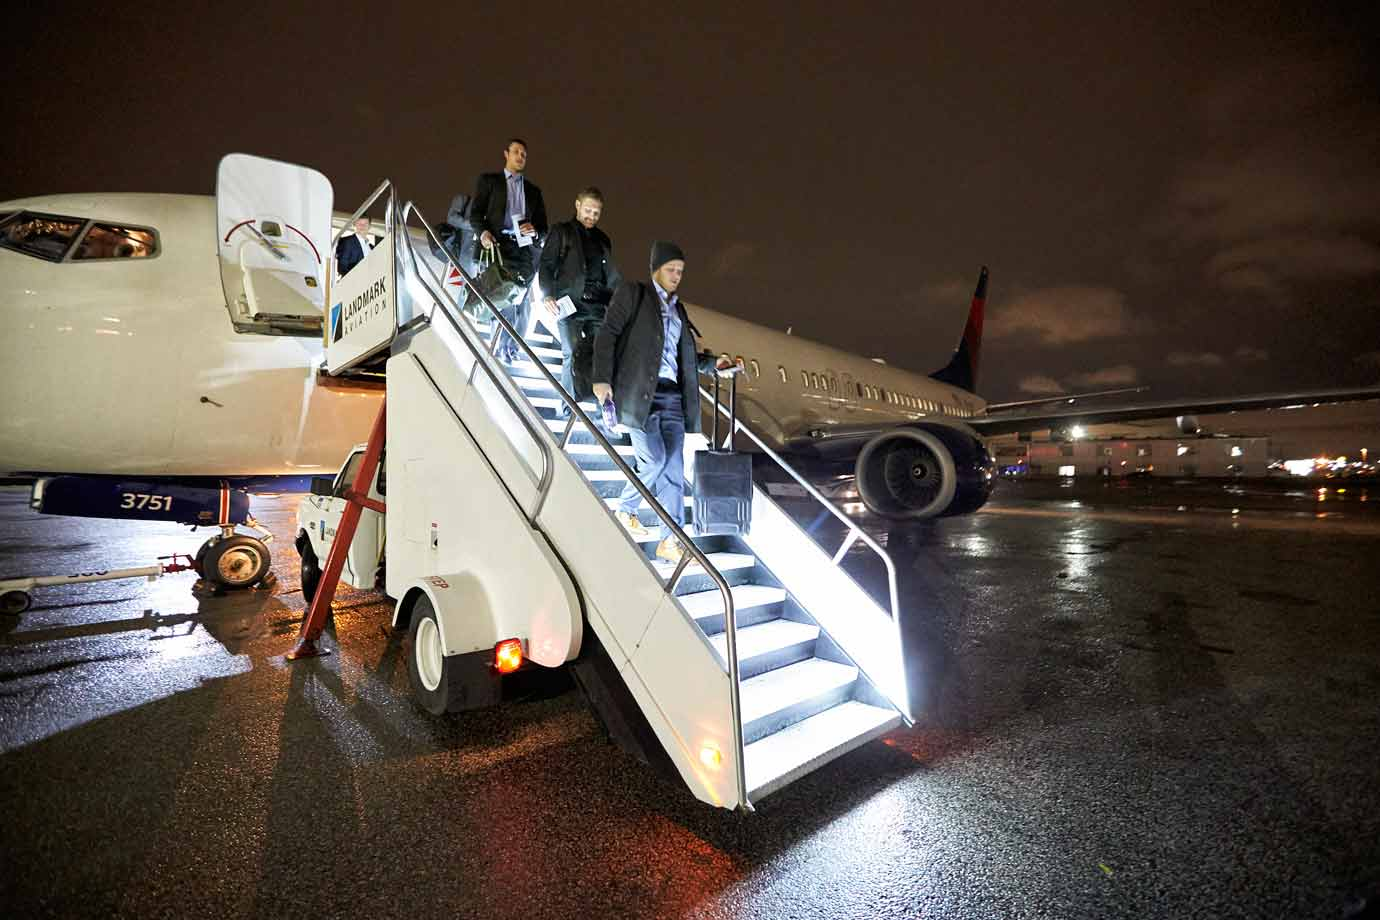 The Capitals touch down at Toronto Pearson at 10:30 p.m. and head for their accommodations at the Ritz-Carlton on Wellington Street West, one of the poshest hotels used by NHL teams.